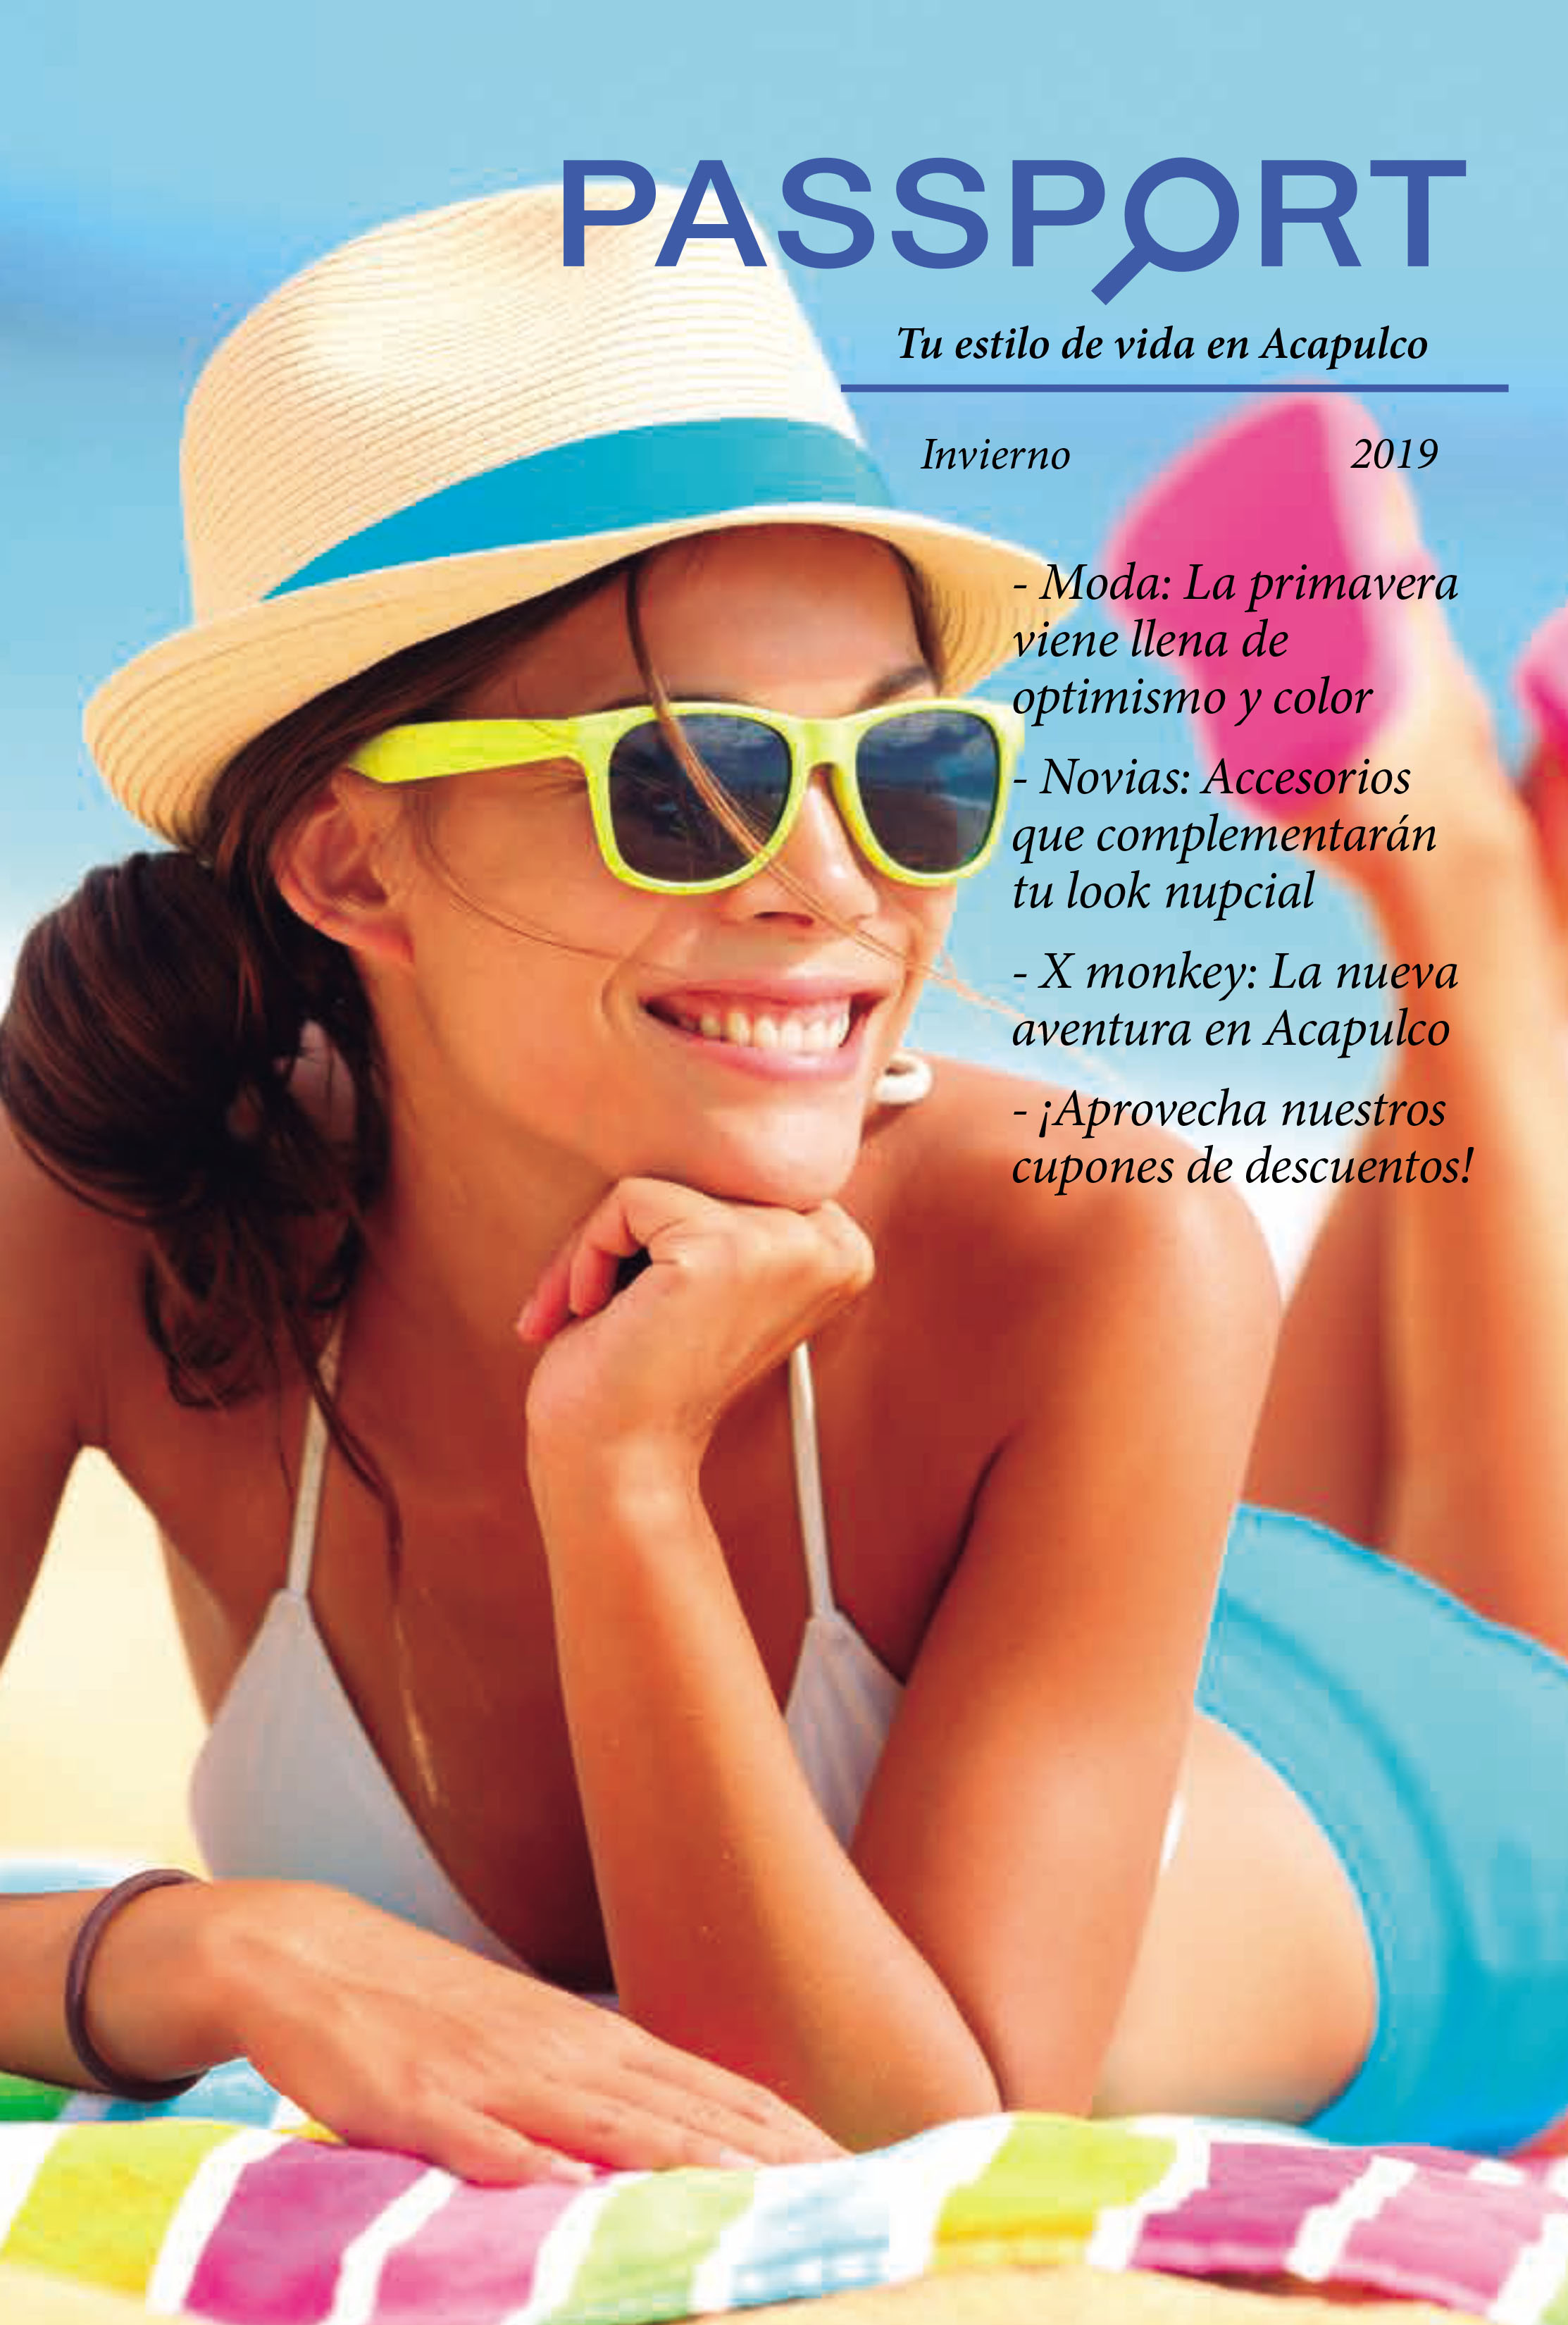 Revista Passport 68